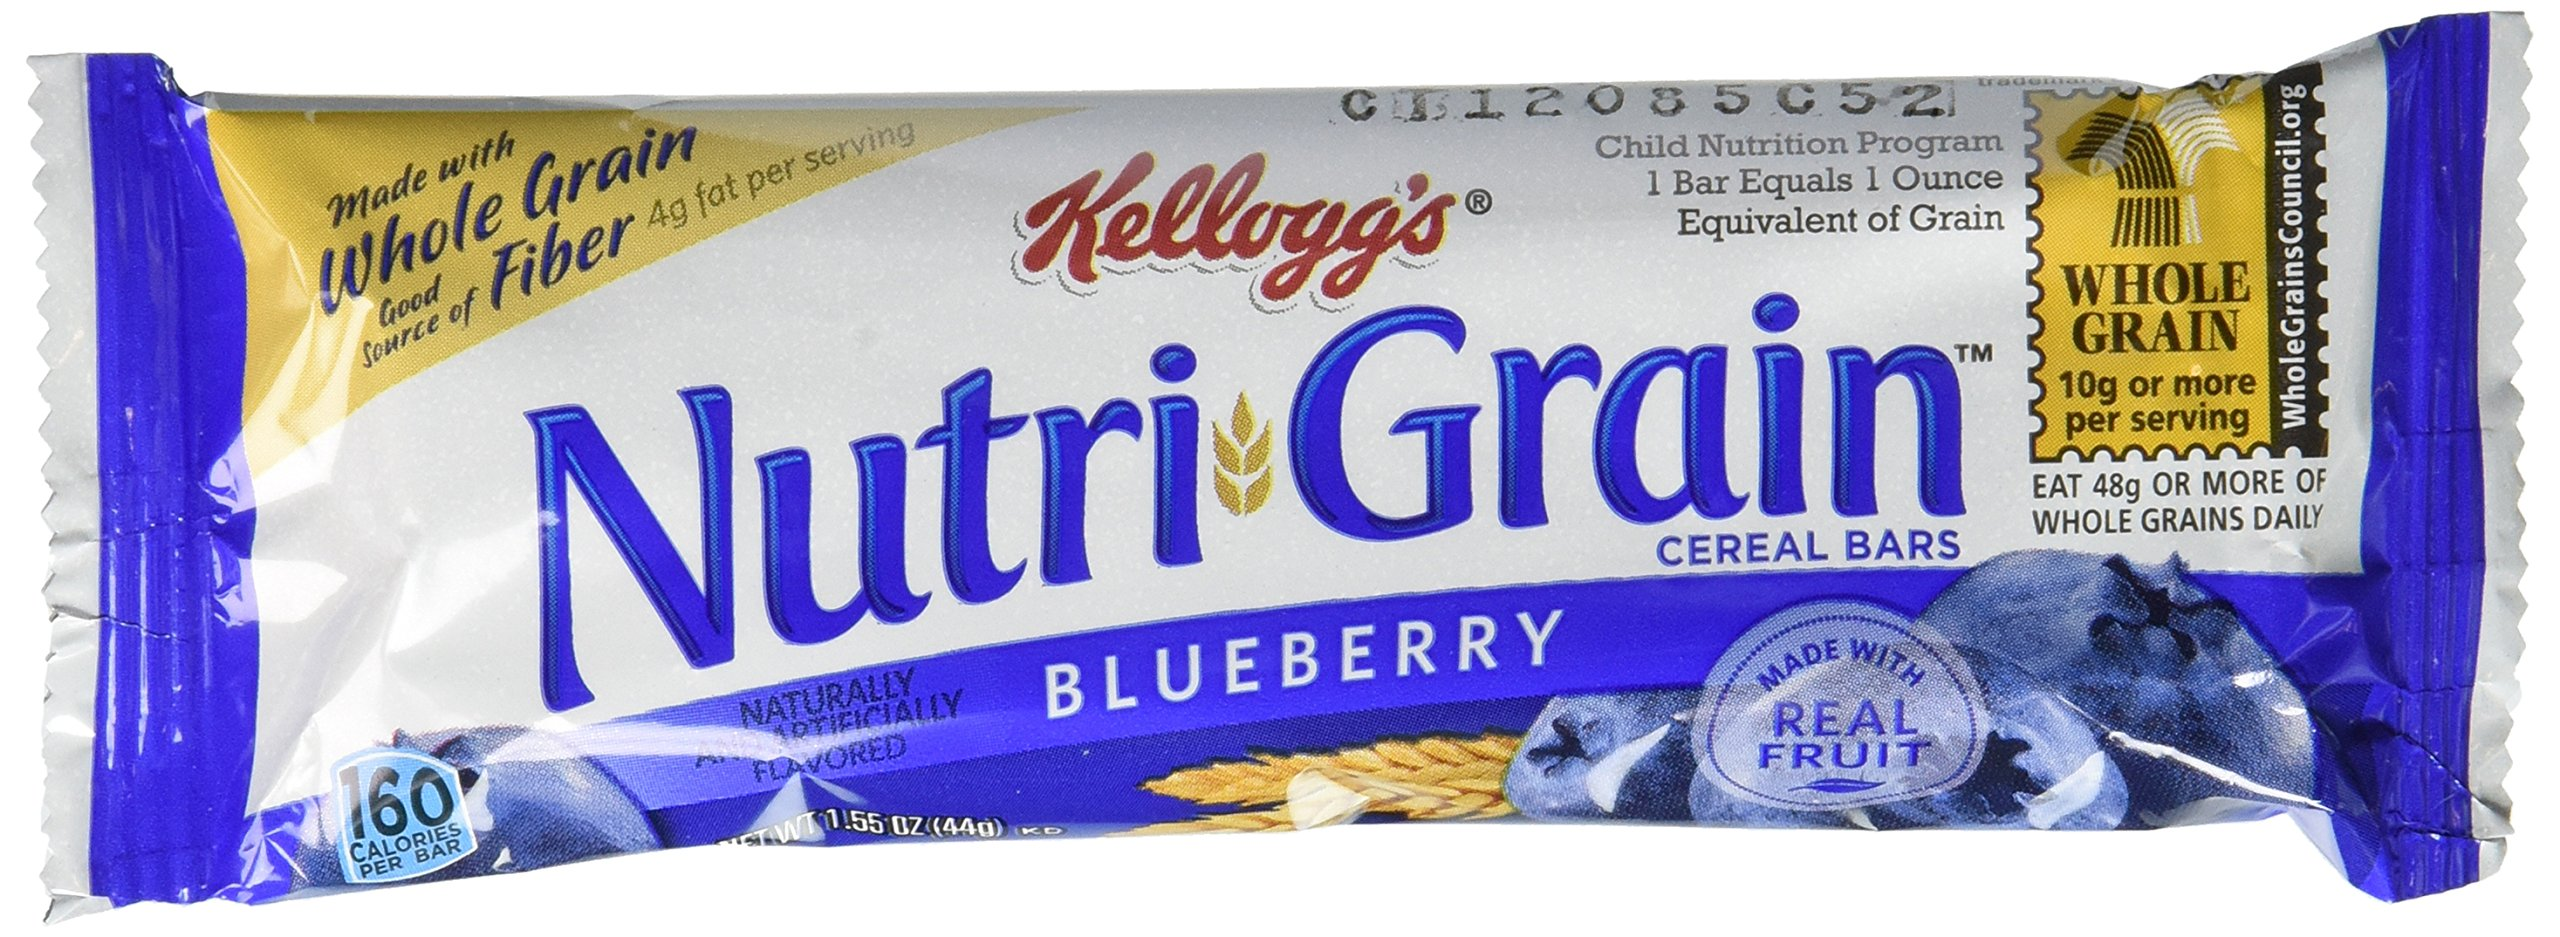 Kellogg's Nutri-Grain Cereal Bars (Blueberry, 1.55 oz, Pack of 96) by Nutri-Grain